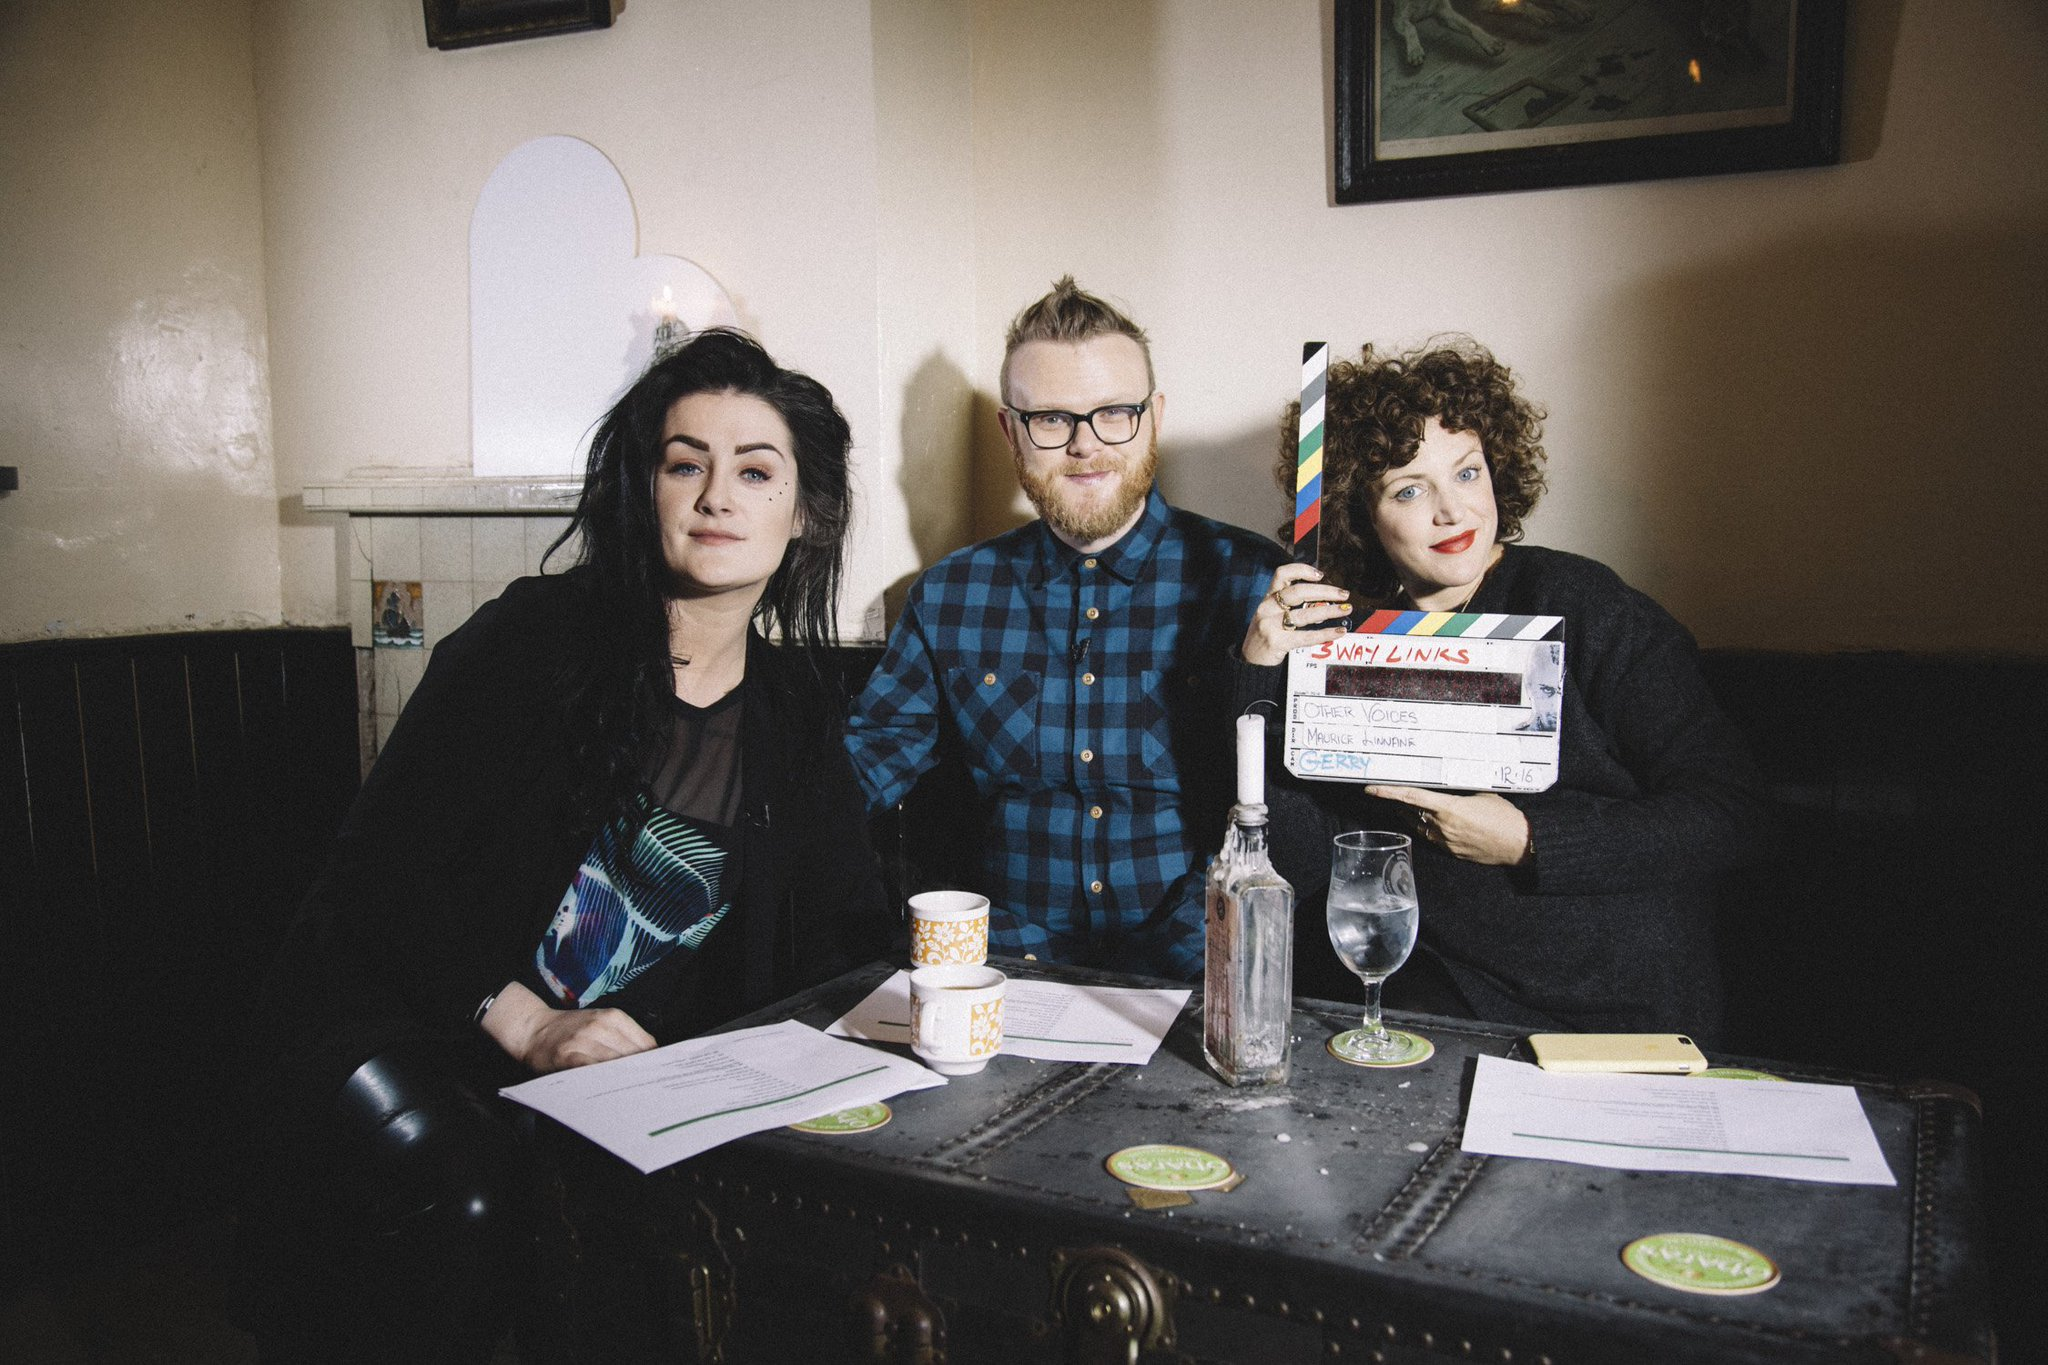 RT @OtherVoicesLive: Not long to go now, join @MayKapes @huwstephens and @AnnieMac on RTÉ 2 // 23.25 📺 🇮🇪🎶💙 https://t.co/6QdOtrwpIt